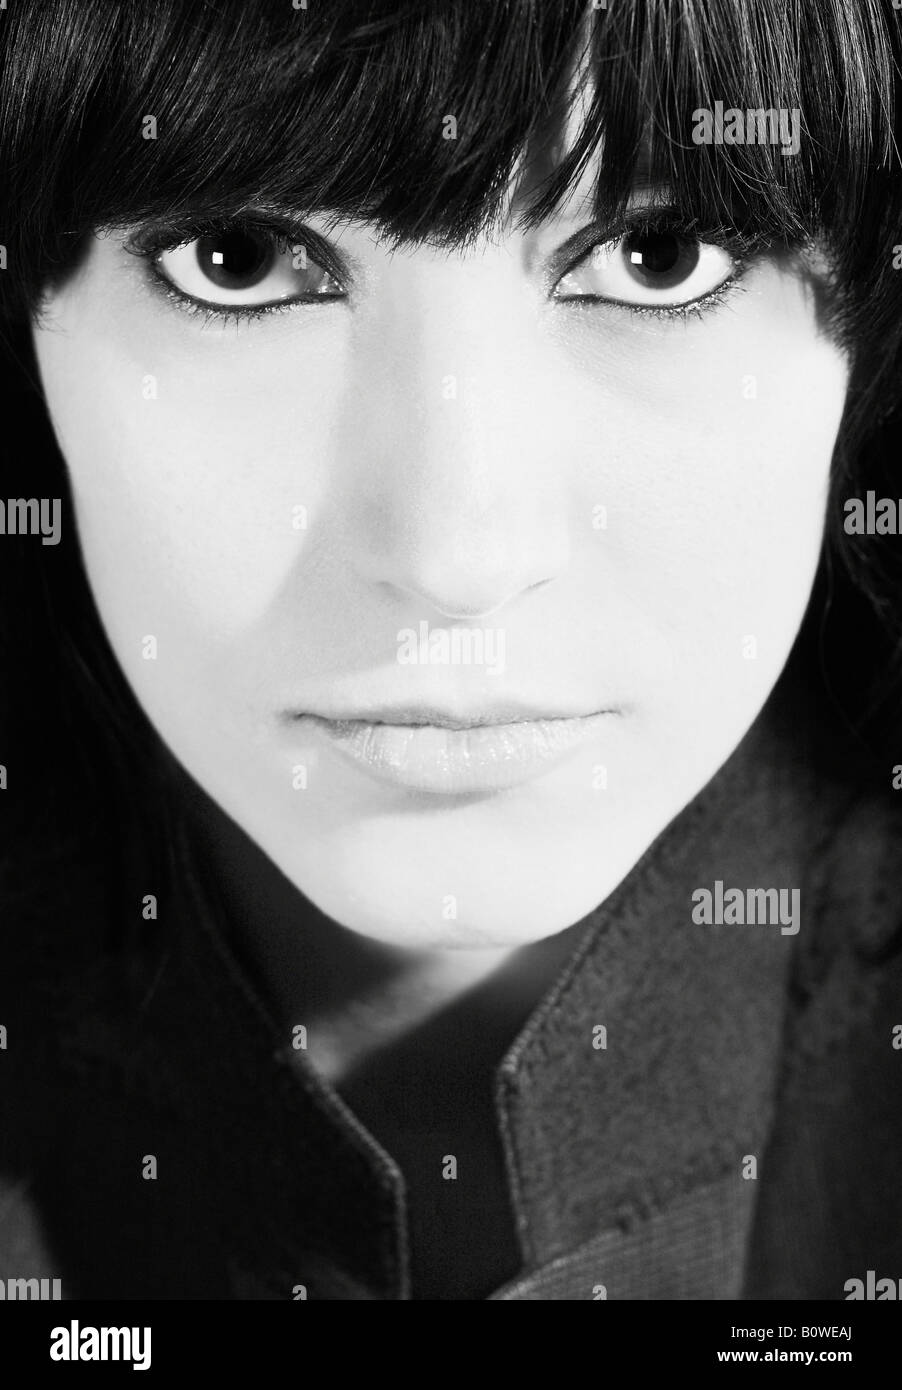 Portrait of a girl with black hair and big eyes, black and white - Stock Image